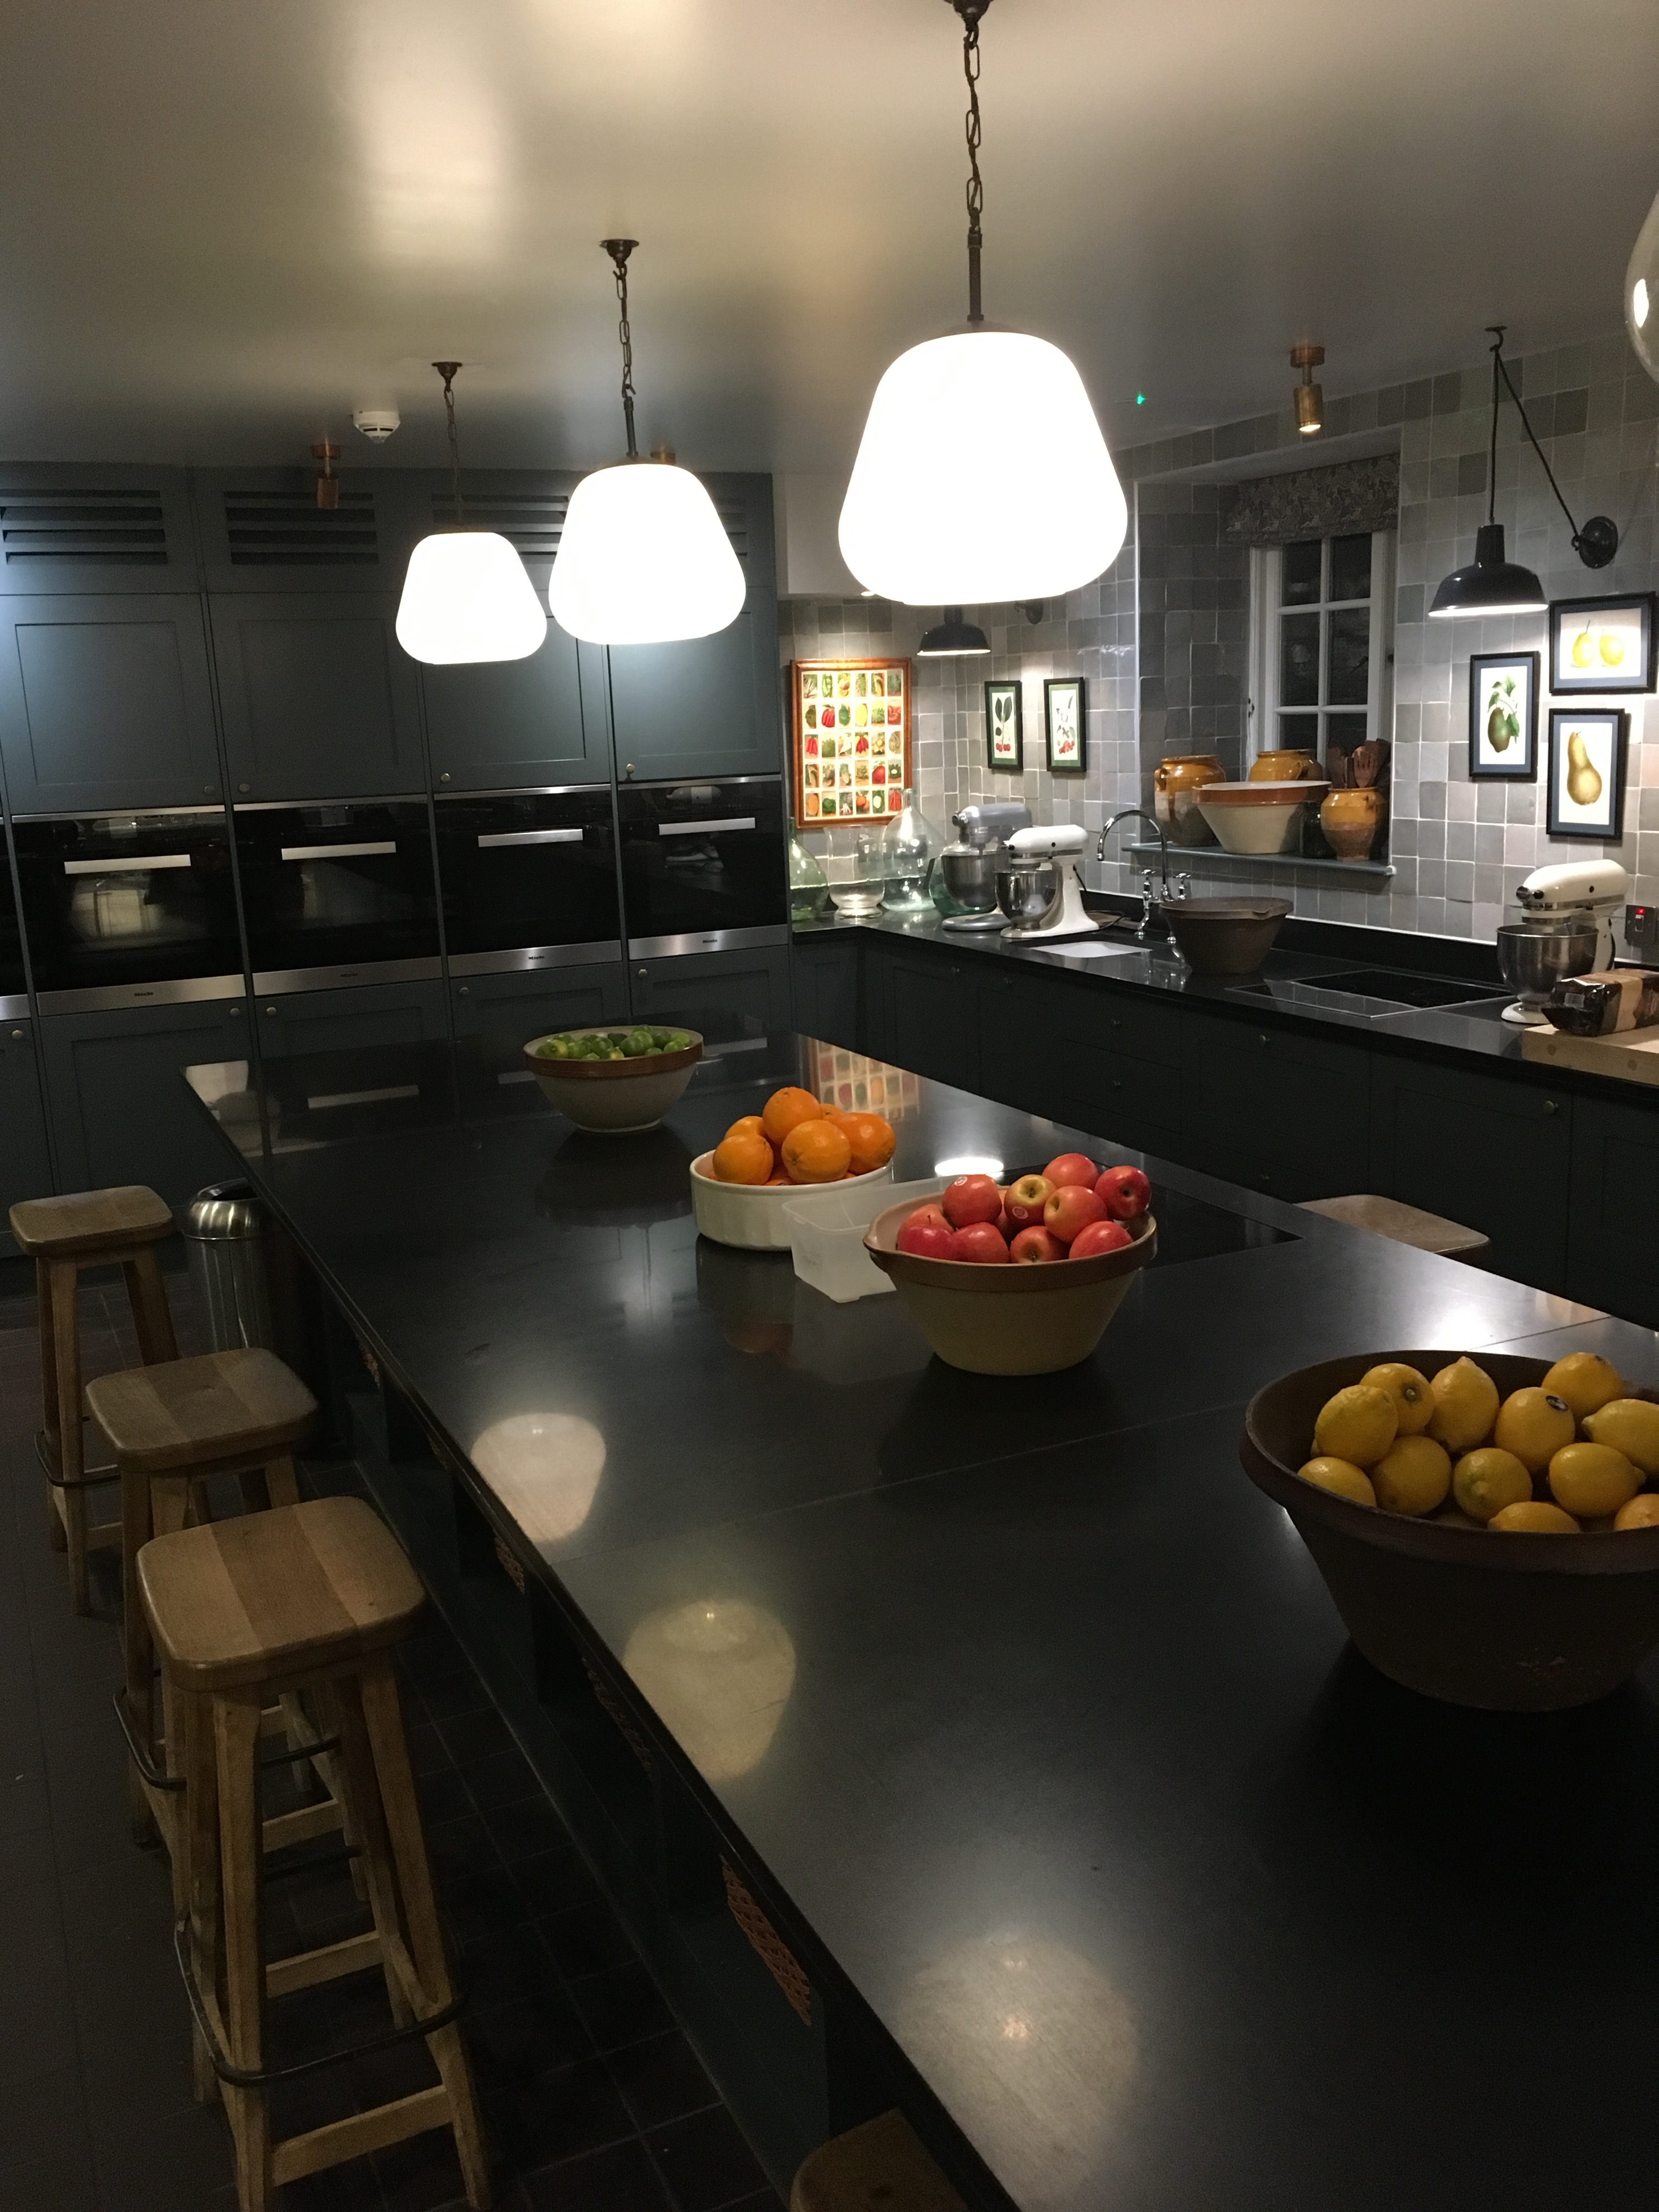 A room with a large worktop with stools and bowls of fruits, with ovens behind